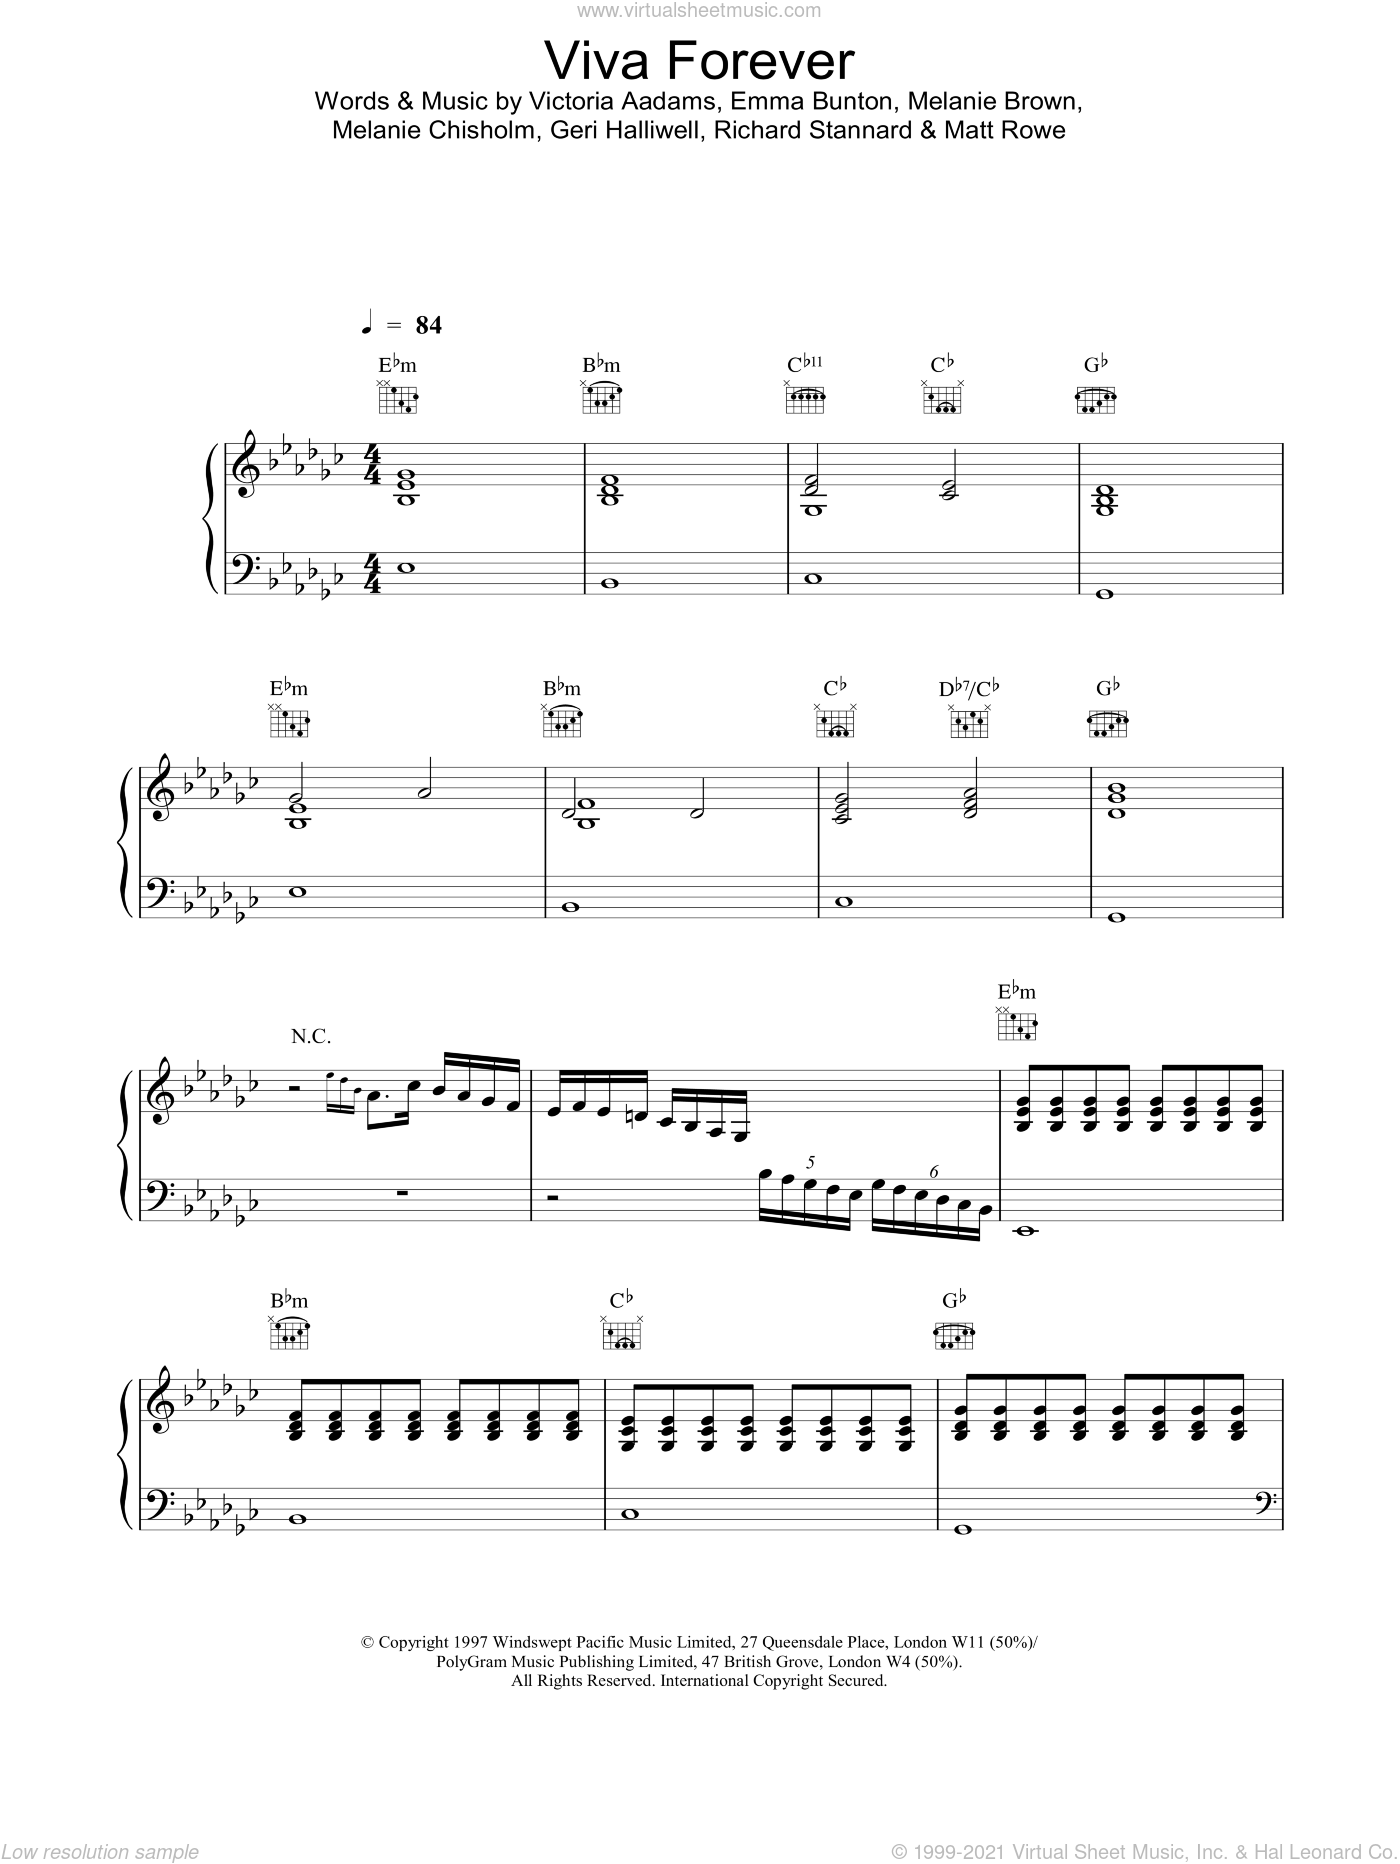 Viva Forever sheet music for voice, piano or guitar by The Spice Girls